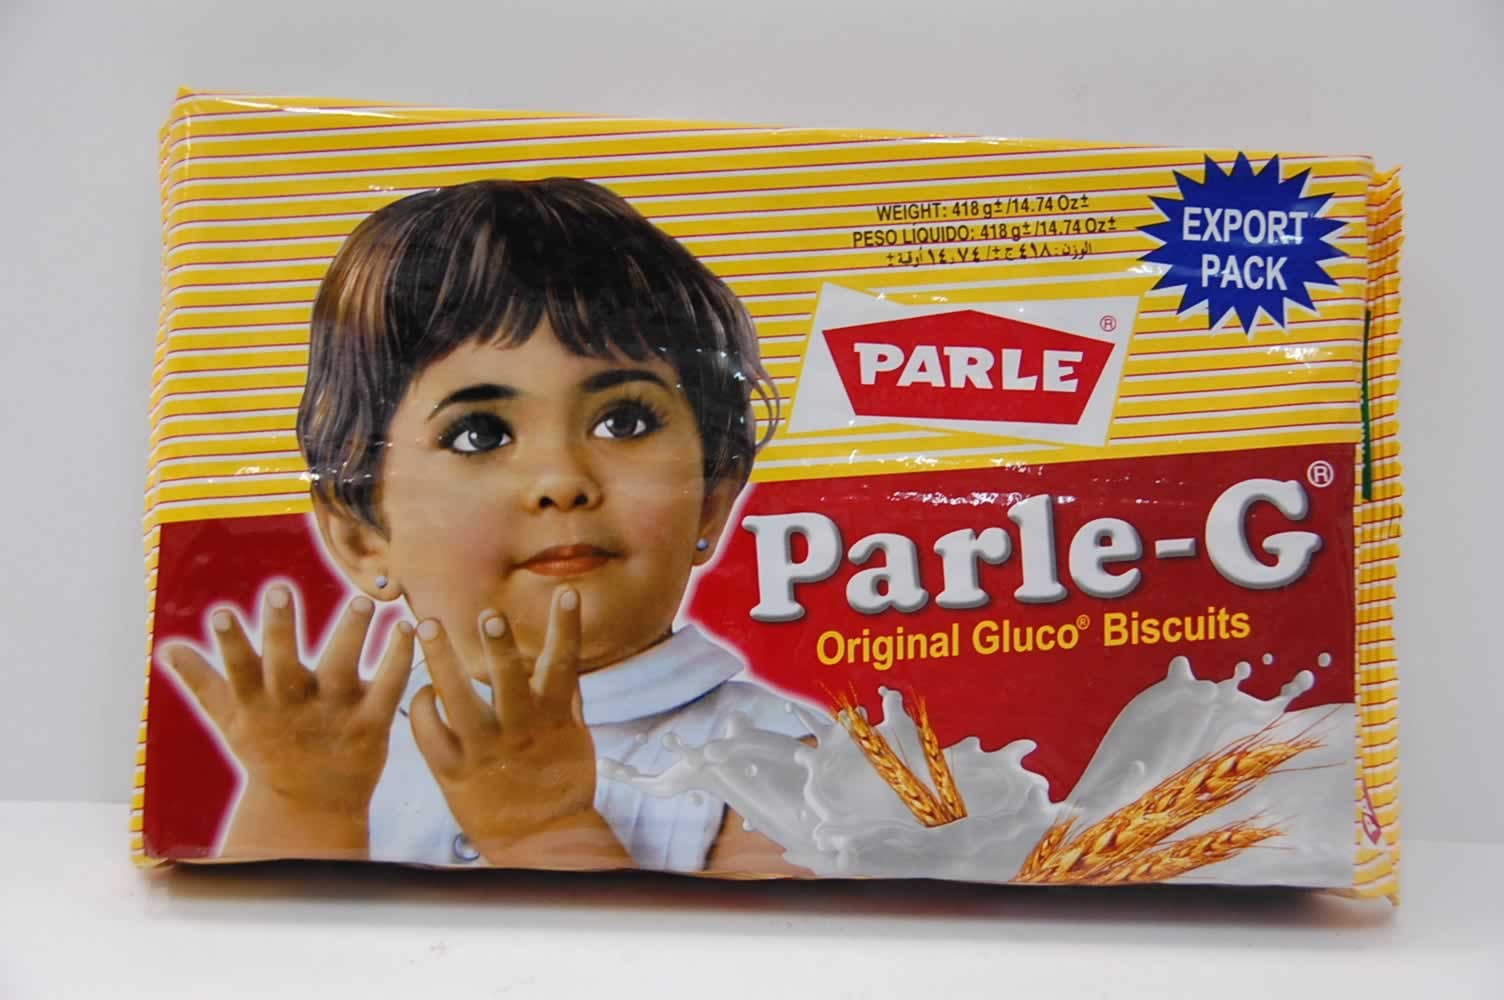 Parle Gluco Biscuits - Parle-G